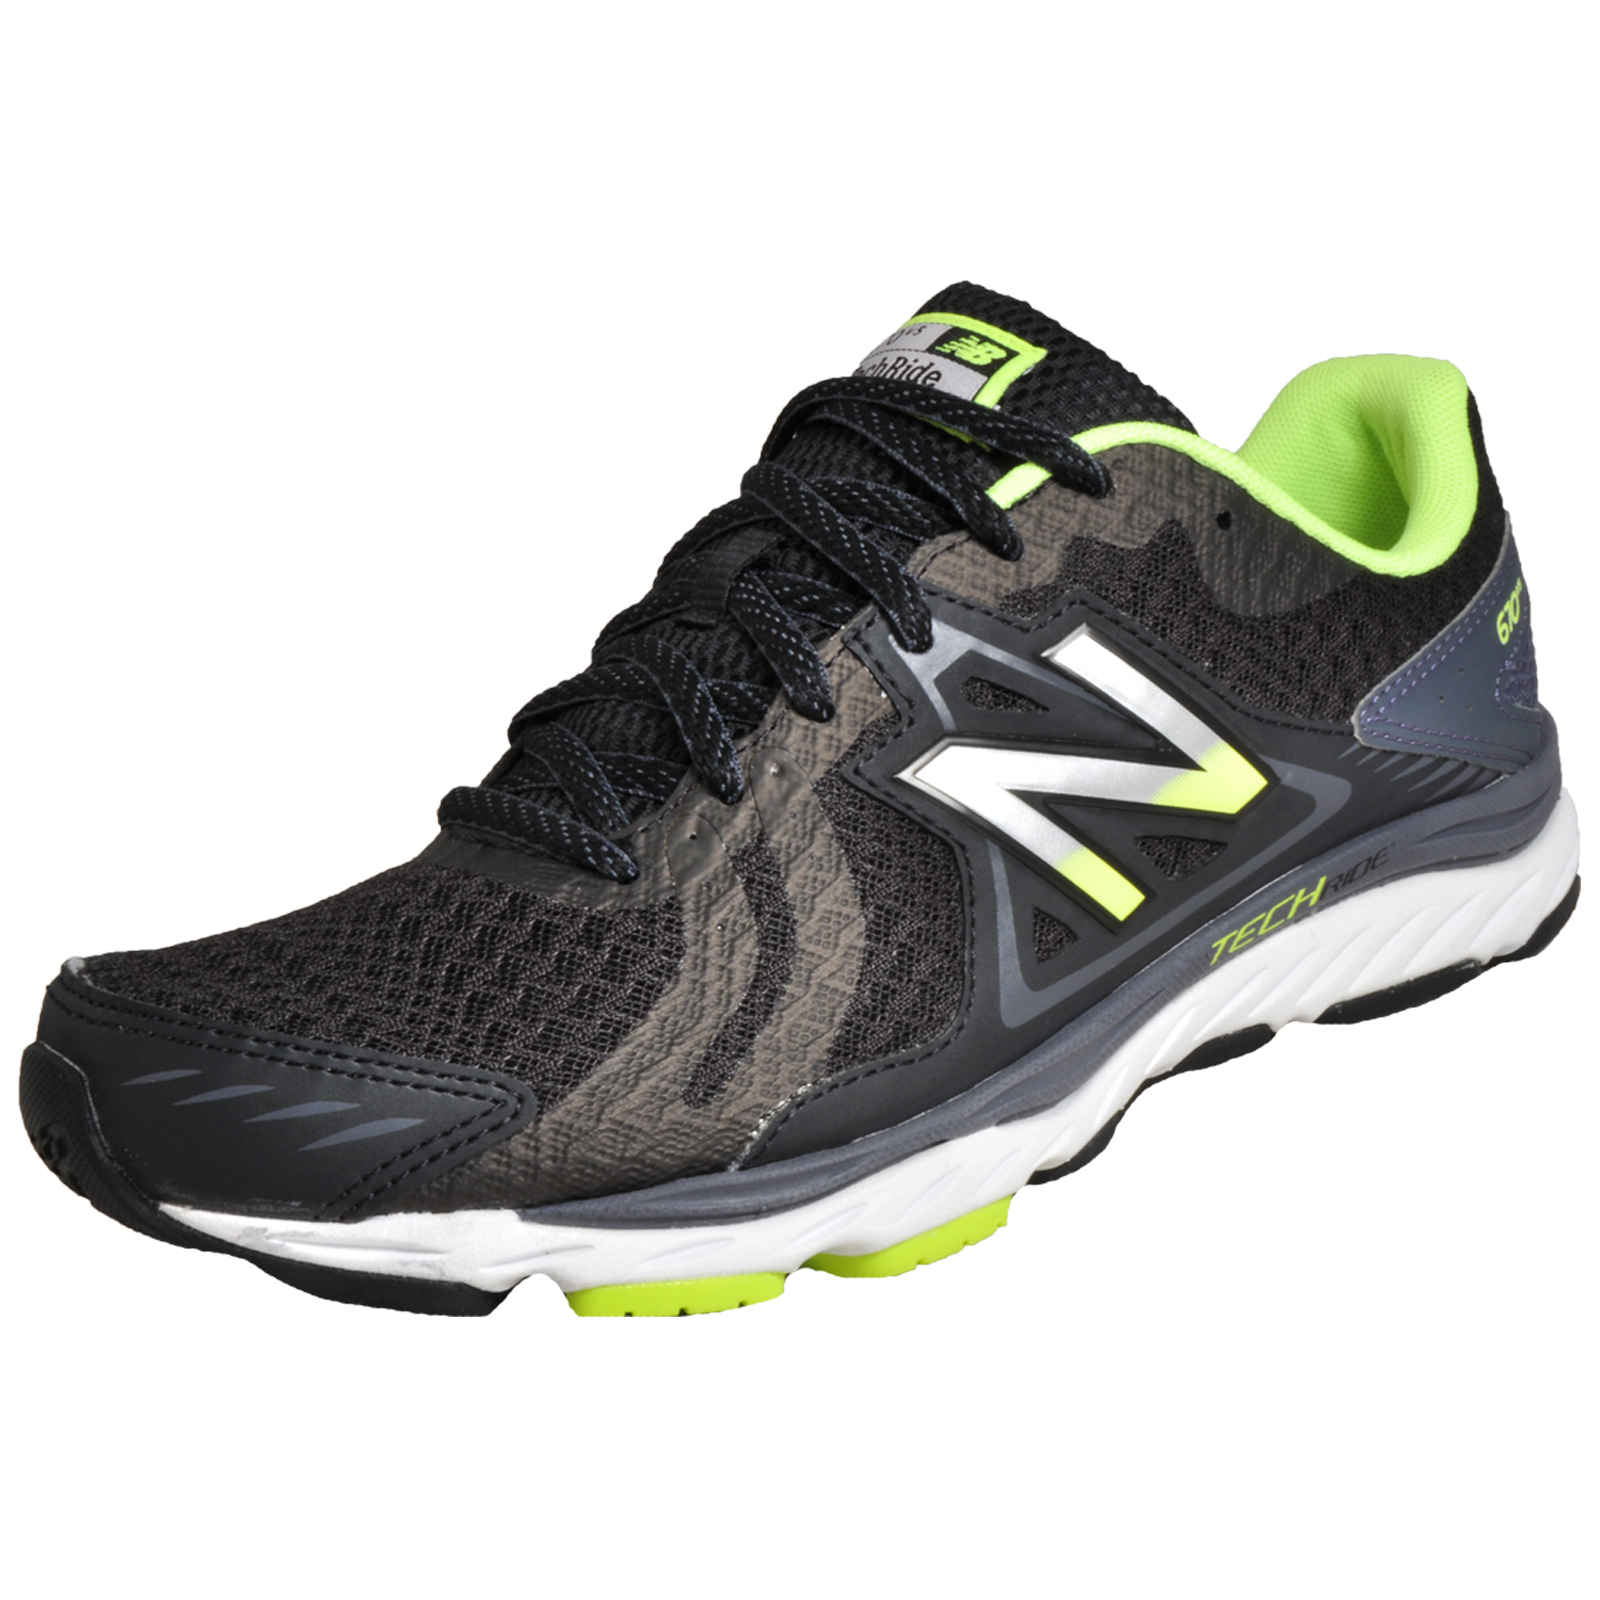 58e84cad9ea068 Details about New Balance 670 v5 Men s Premium Running Shoes Gym Fitness  Trainers Black